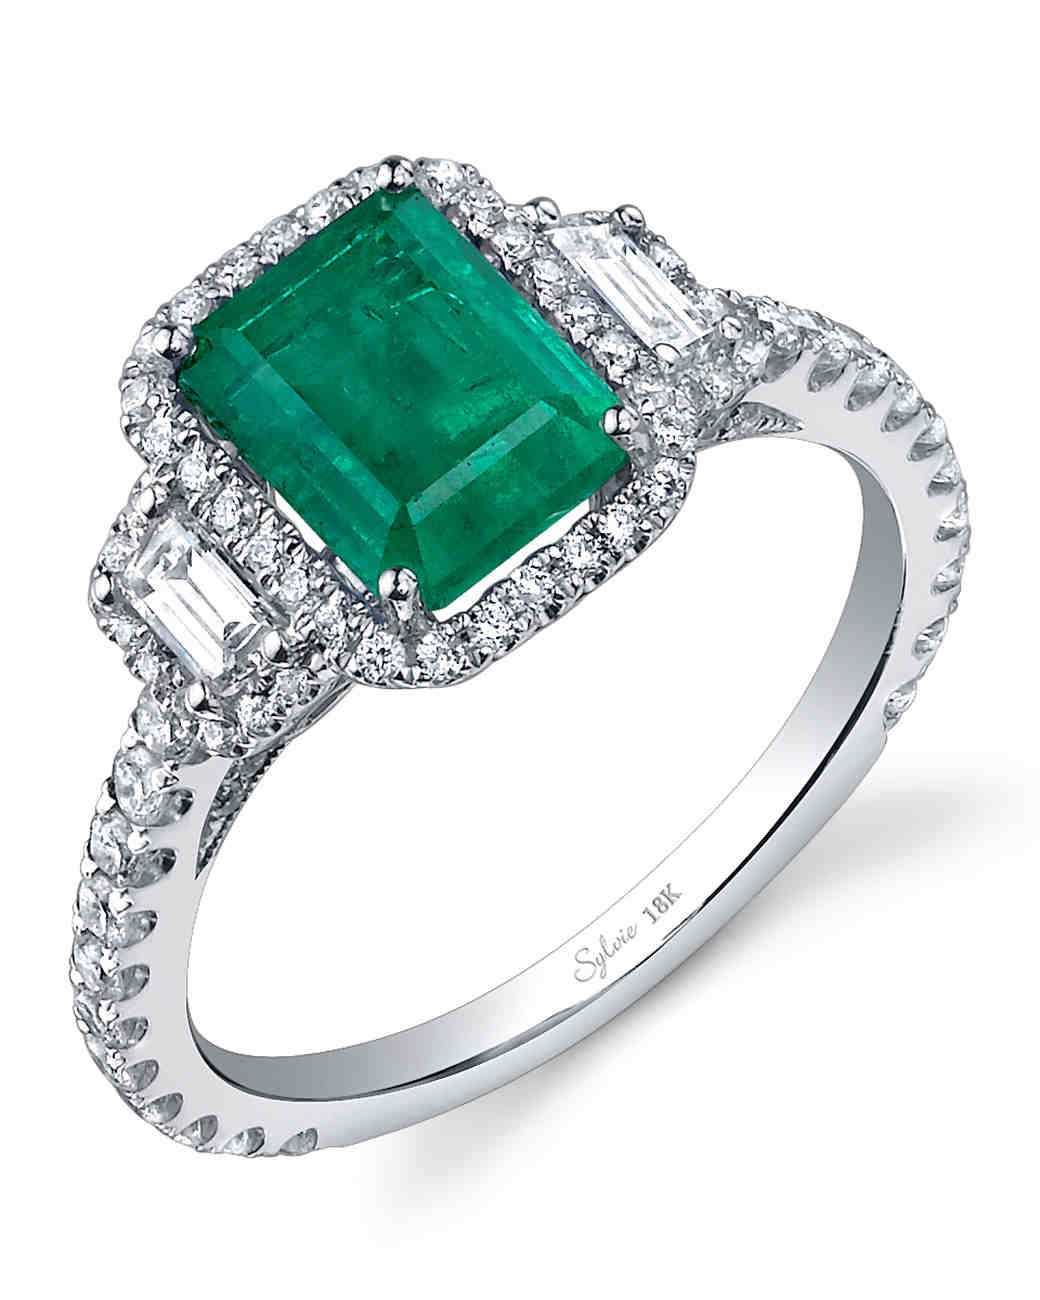 ring rings emerald art deco diamond engagement jewellery gemstone halo platinum